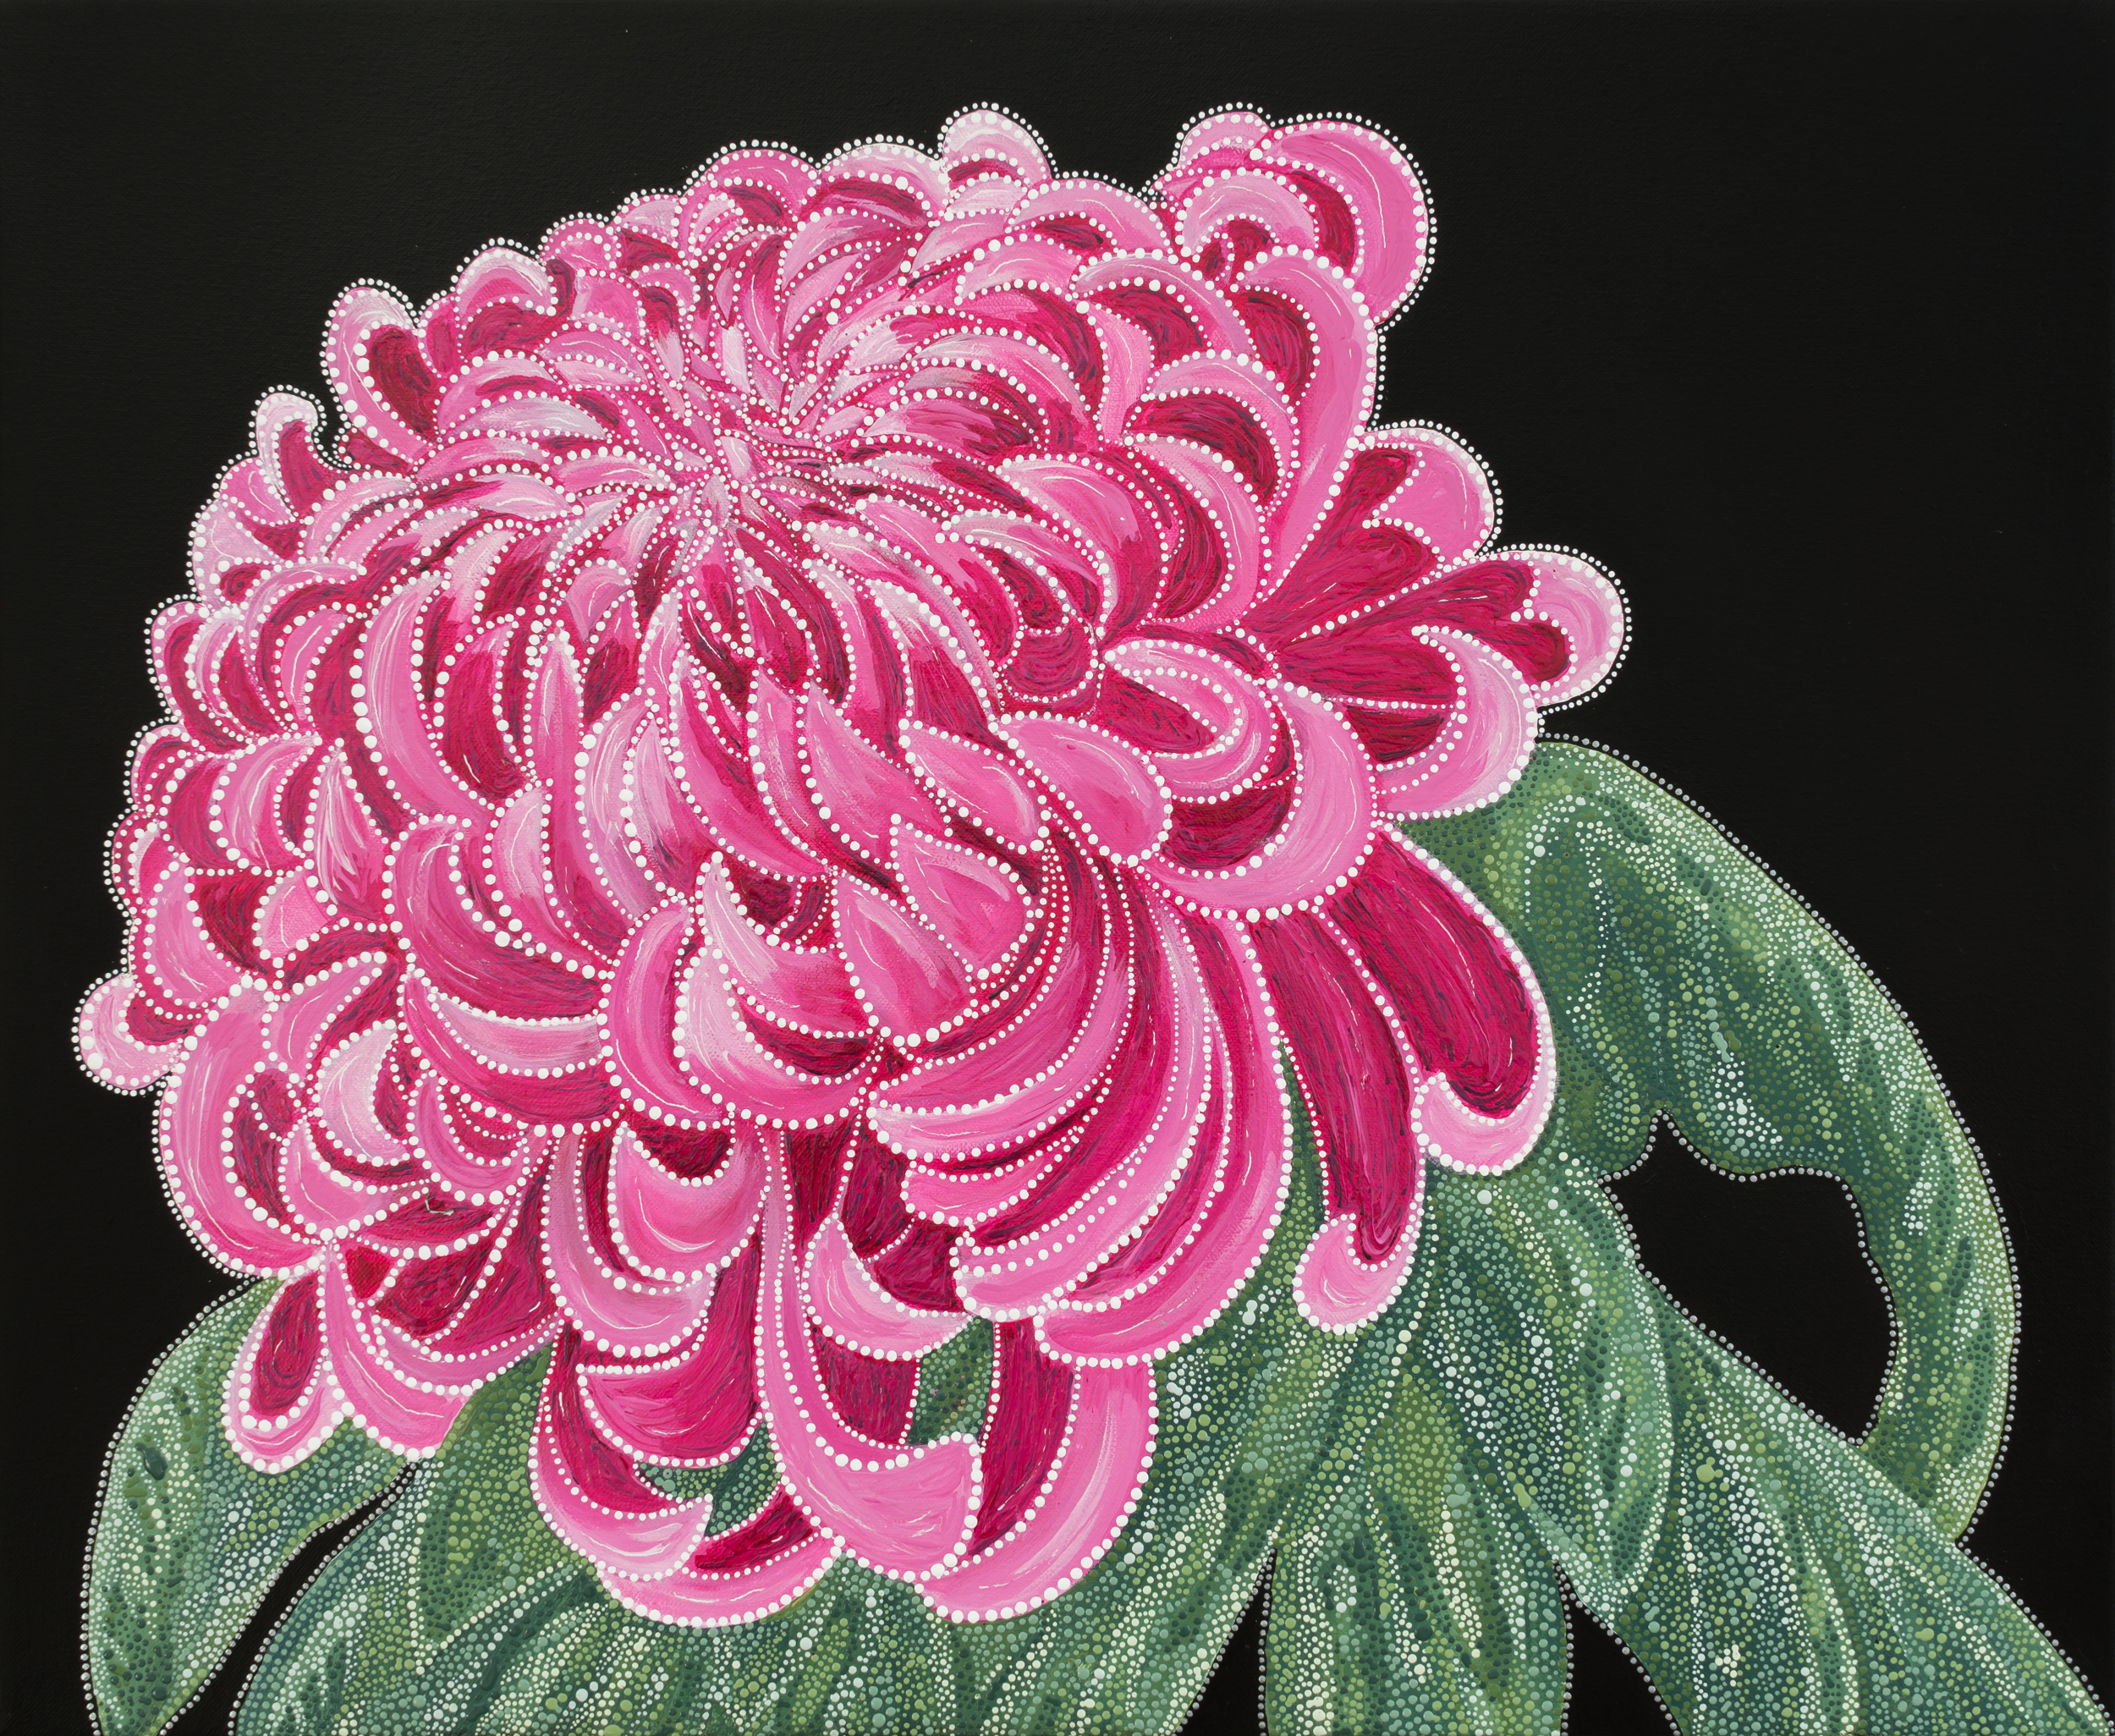 Chrysanthemum 1.